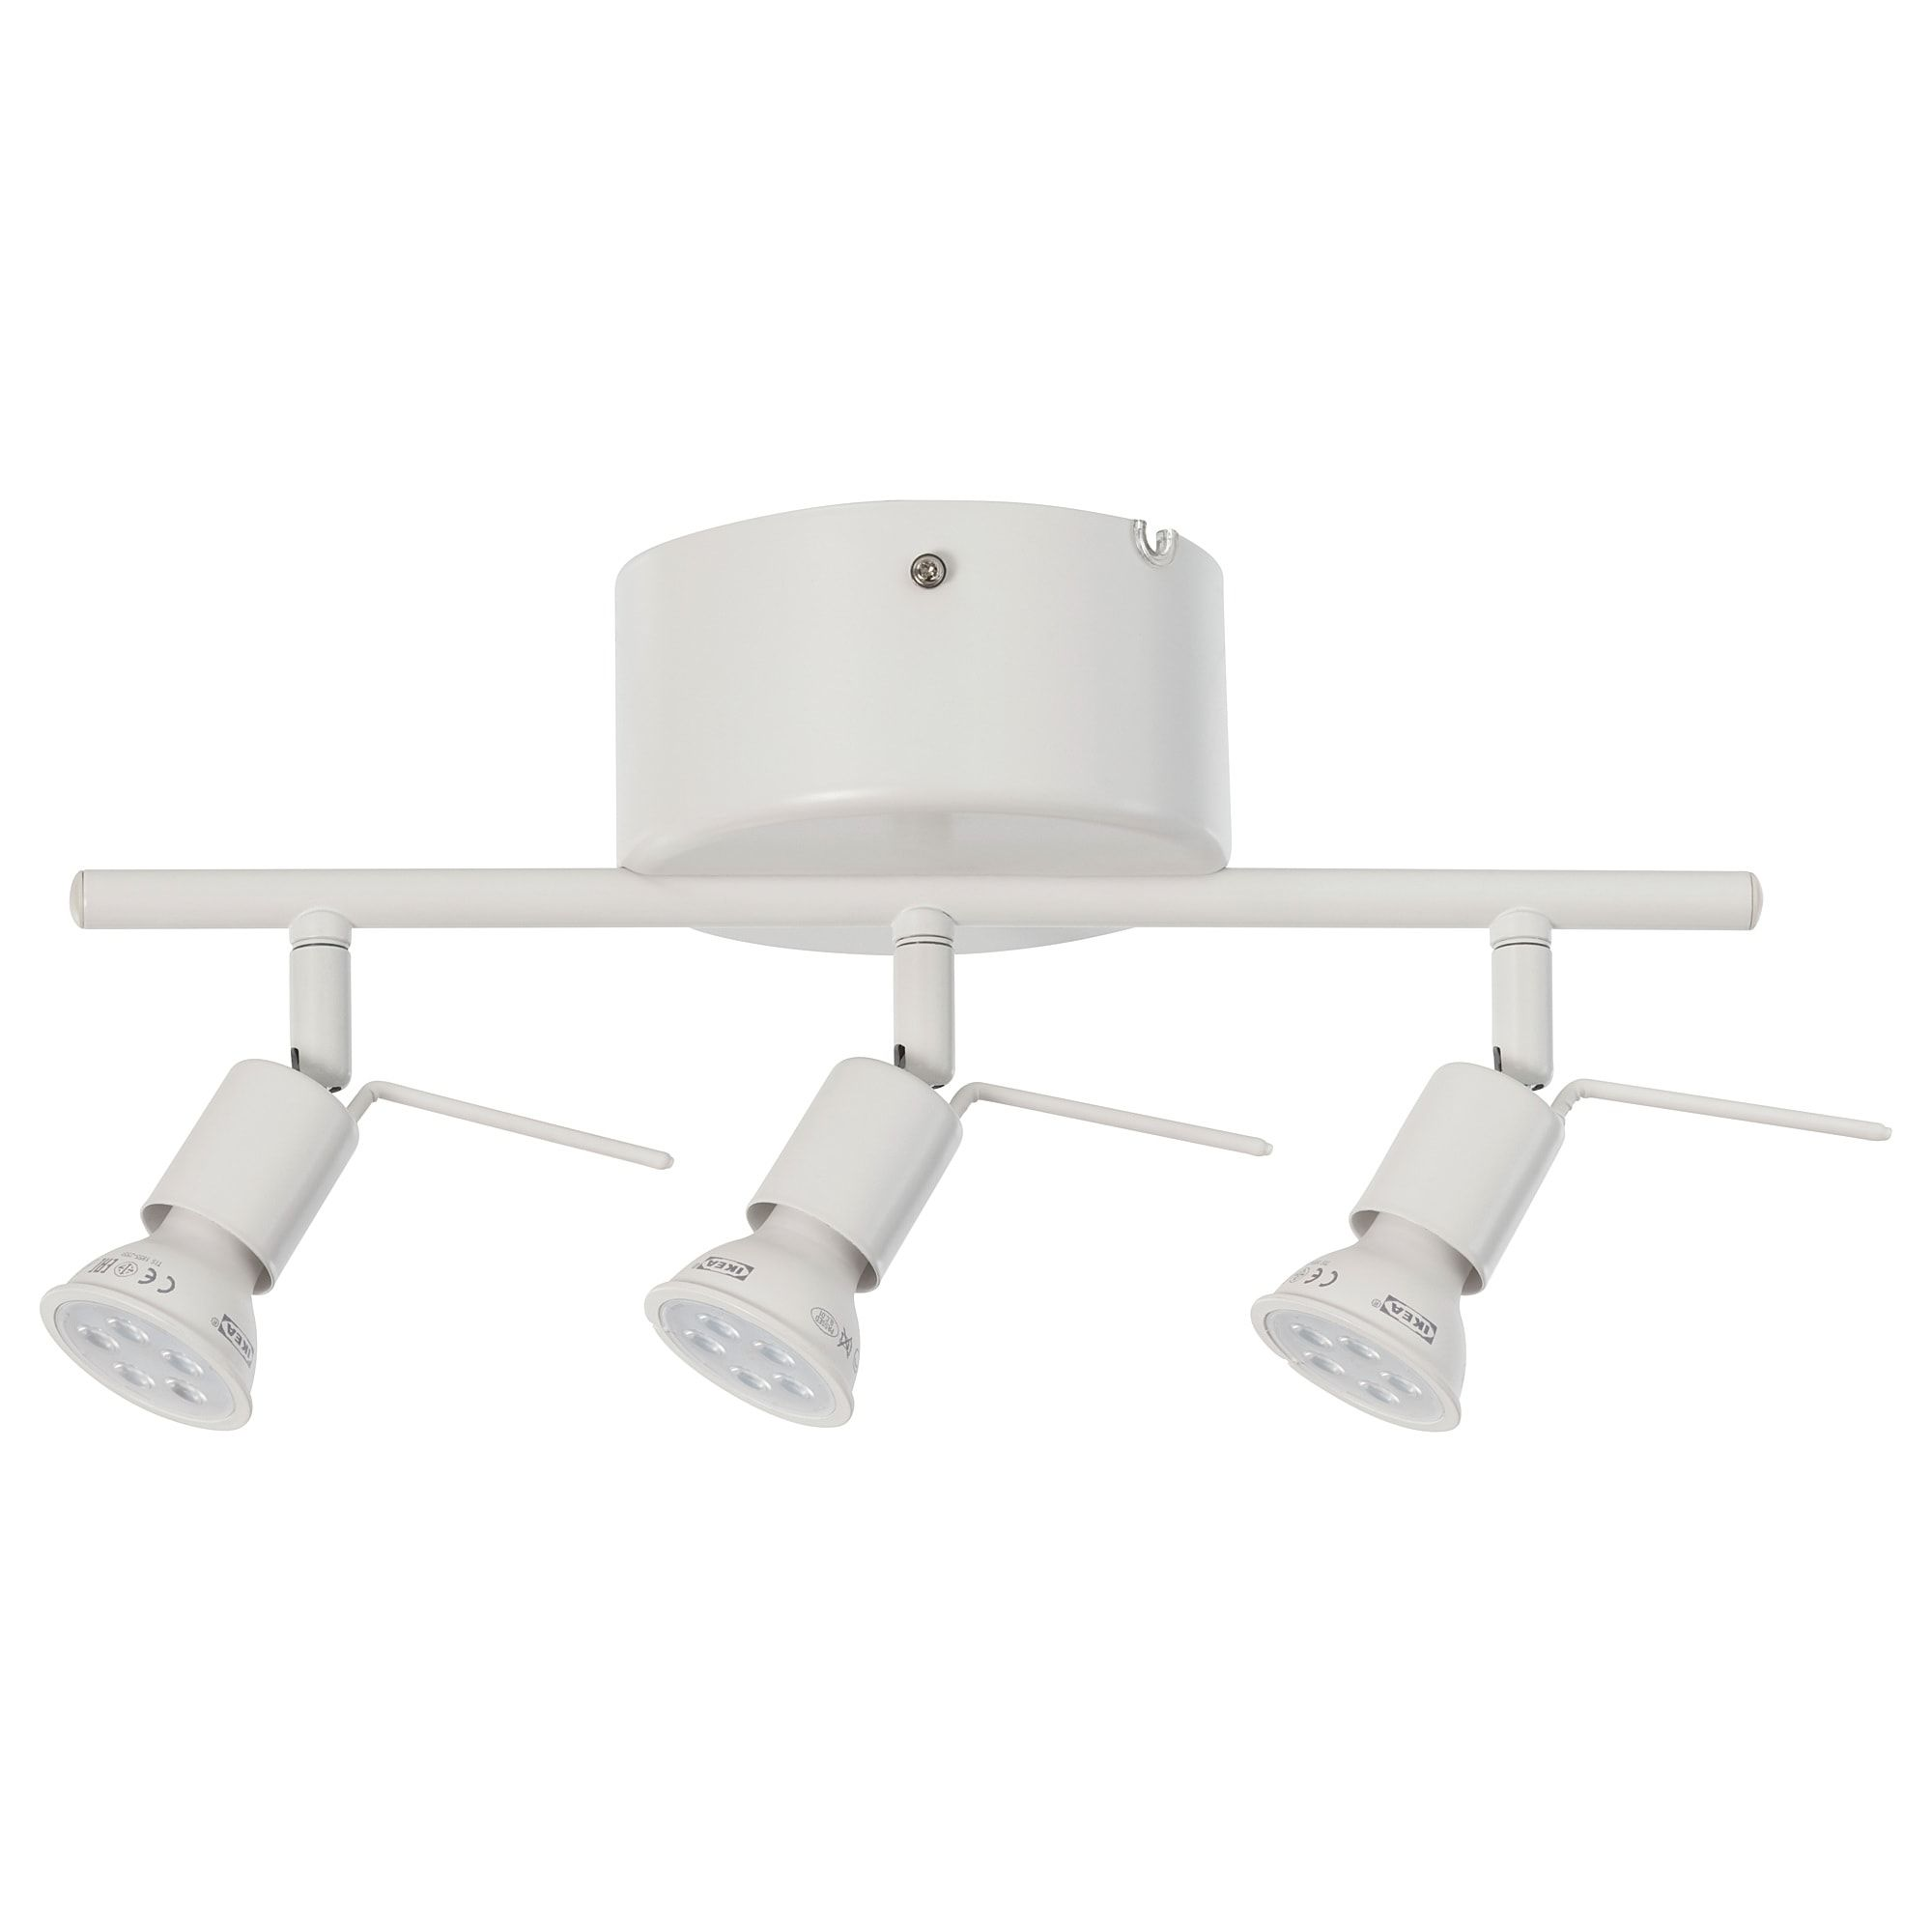 Tross Takskena 3 Spots Vit Ikea Ikea Led Ceiling Spotlights Ceiling Lights